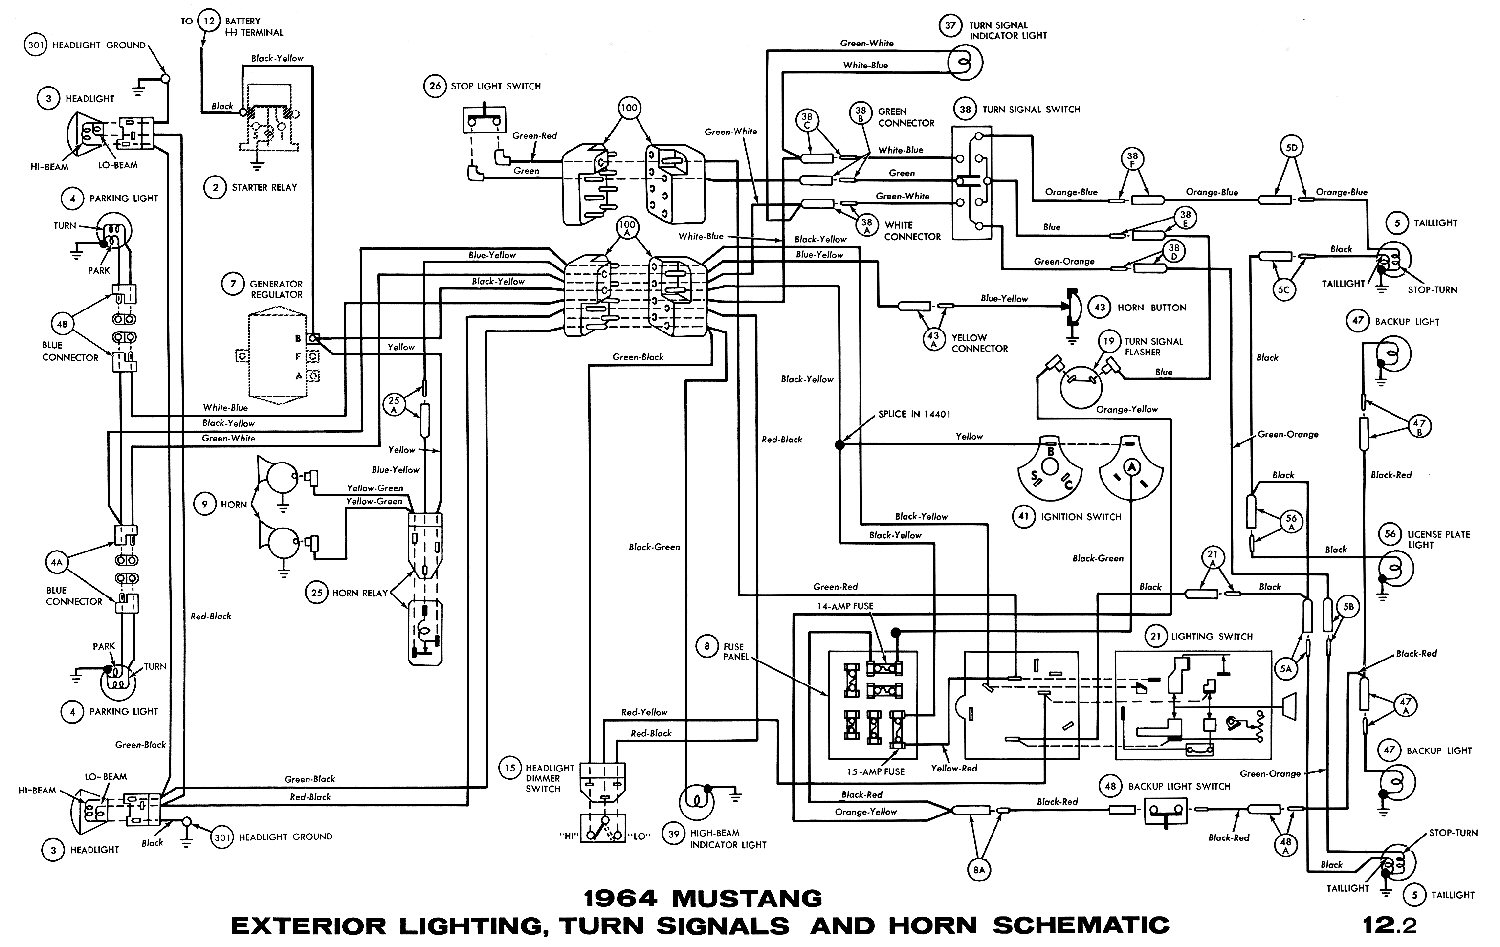 1964 Mustang Wiring Diagrams Average Joe Restoration Lighting Headlamps